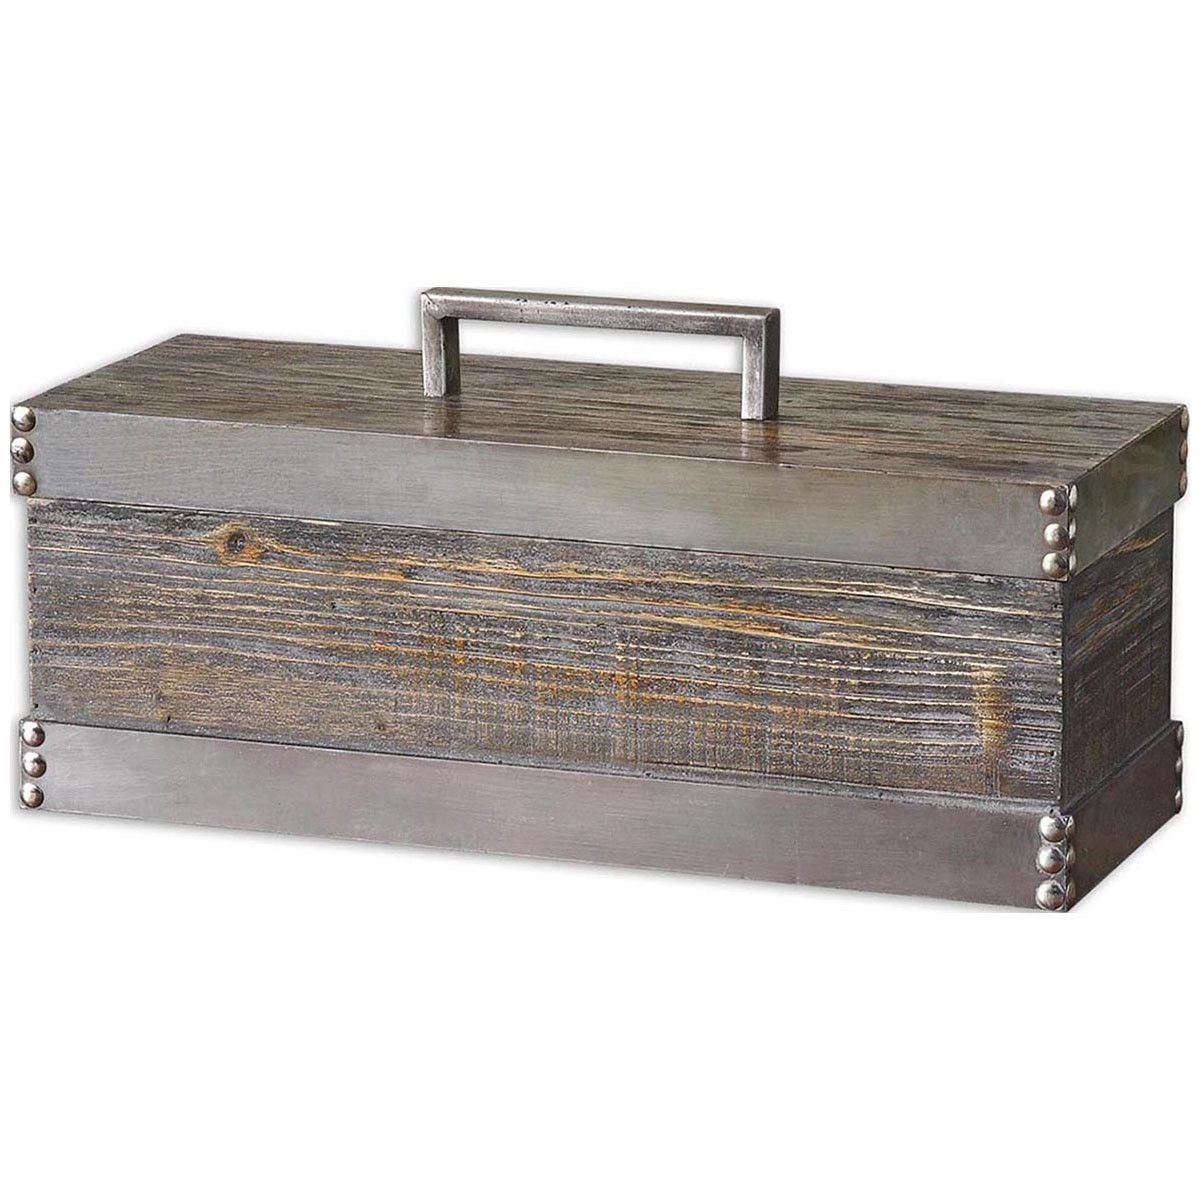 Decorative Boxes Uttermost Lican Natural Wood Decorative Box 19669  Products